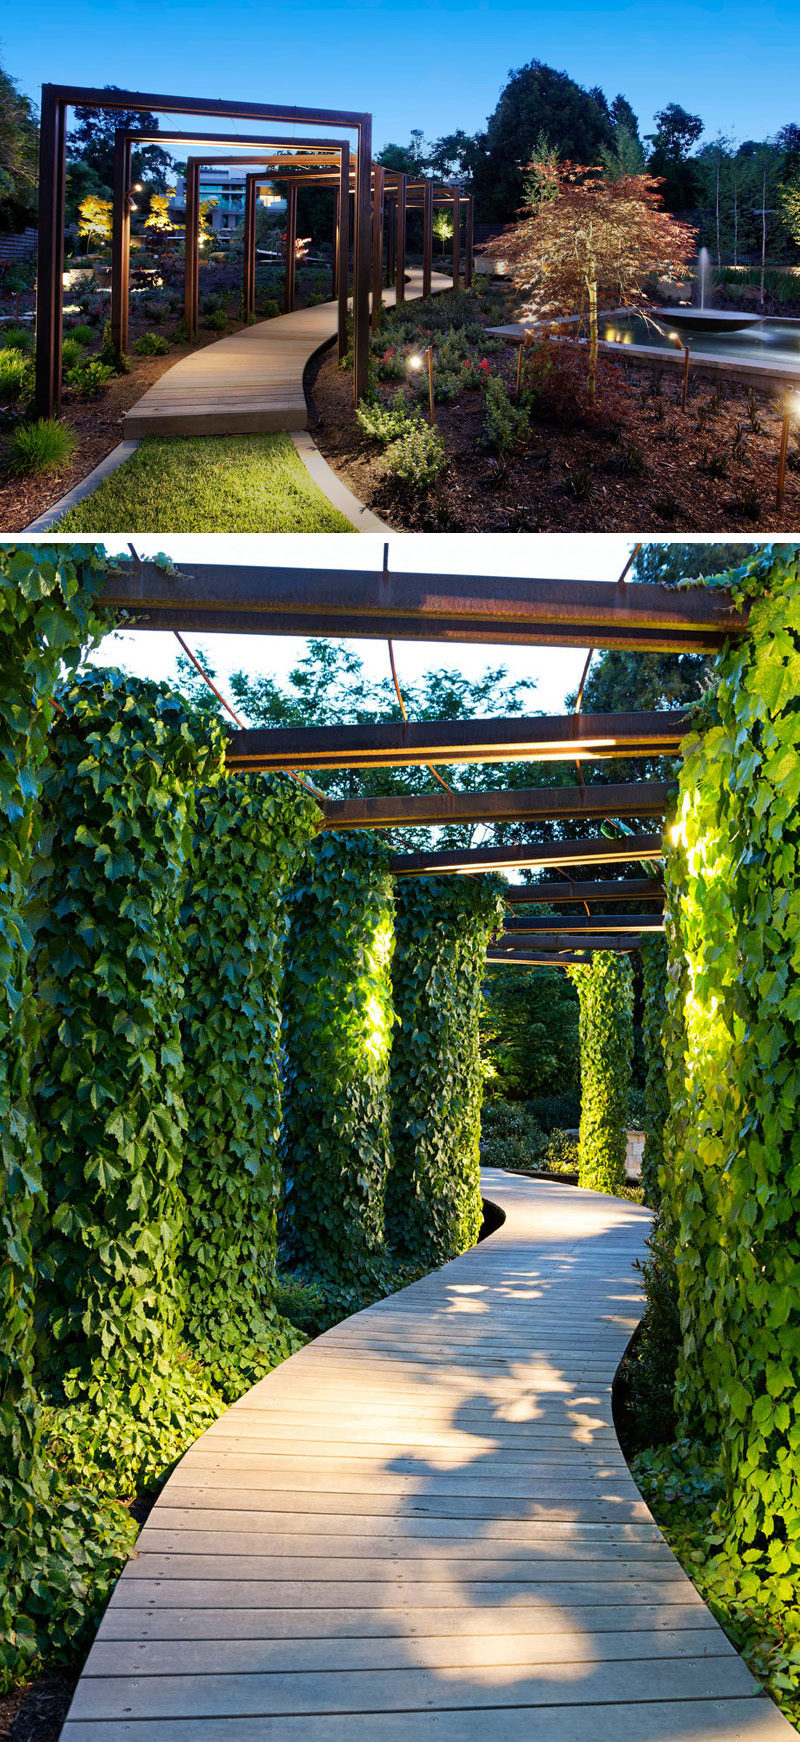 This modern garden pathway is surrounded by ivy covered arches and lit up by overhead lights.